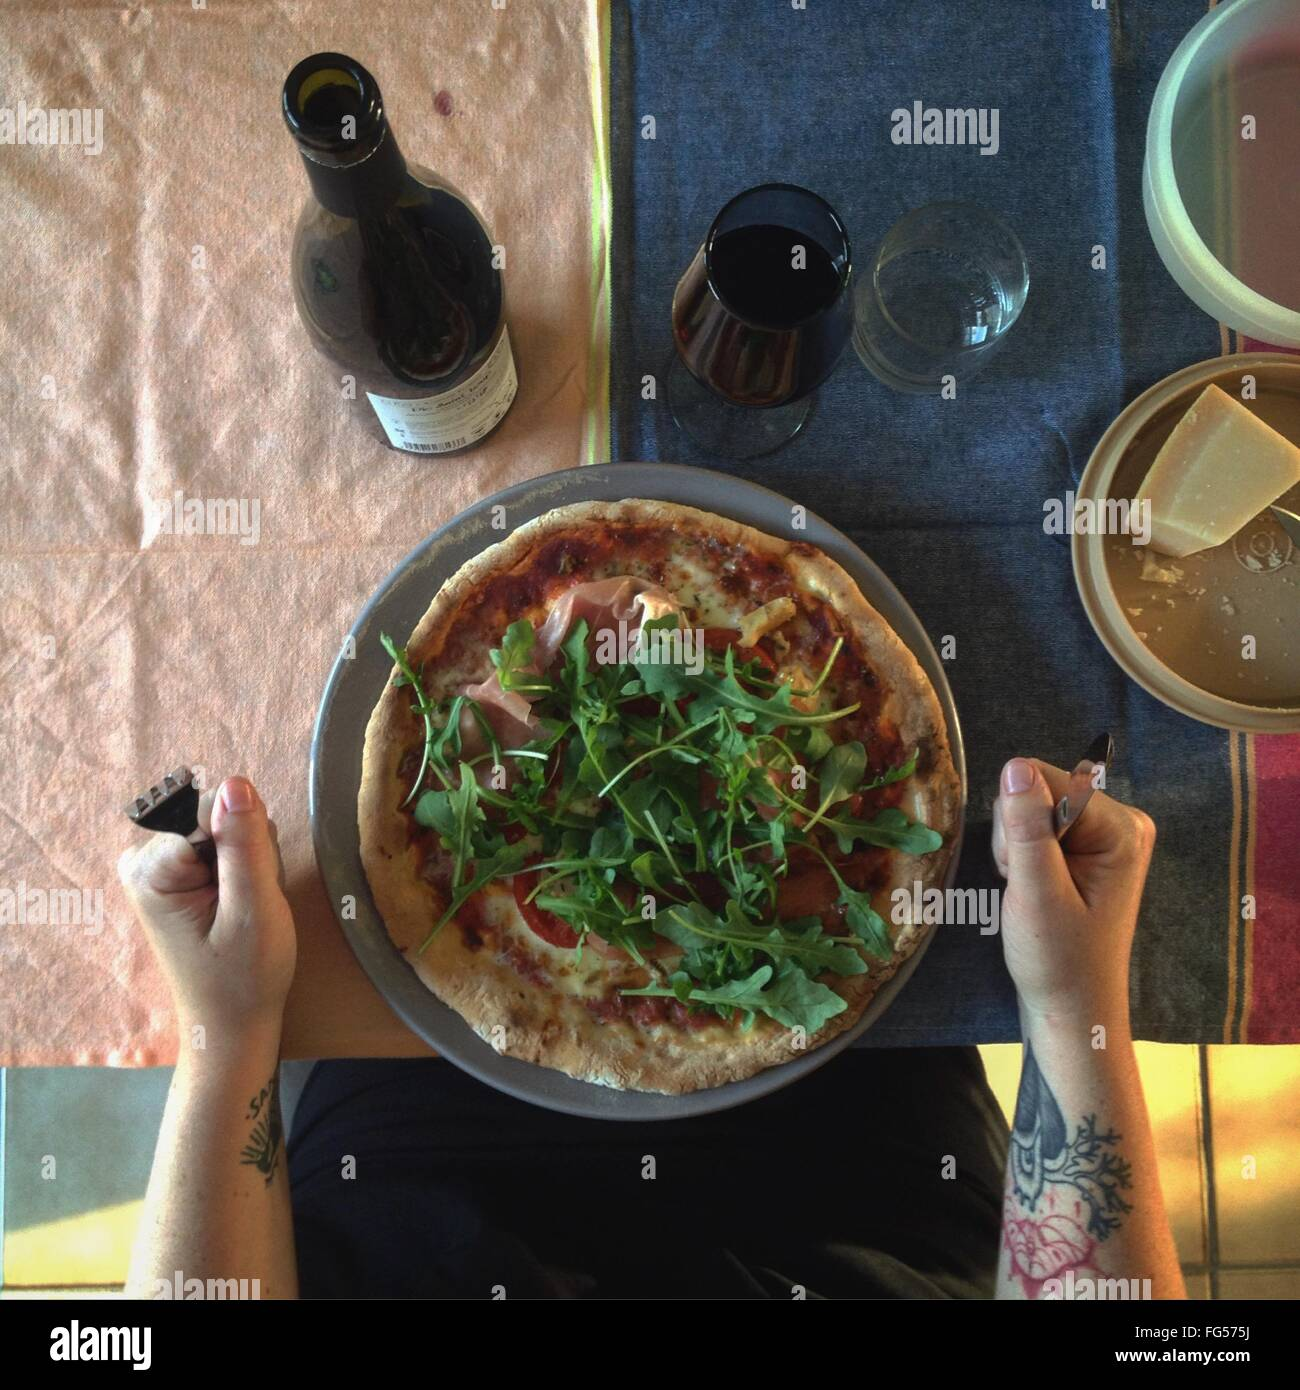 Portrait de la main avec la pizza et le vin sur la table Photo Stock